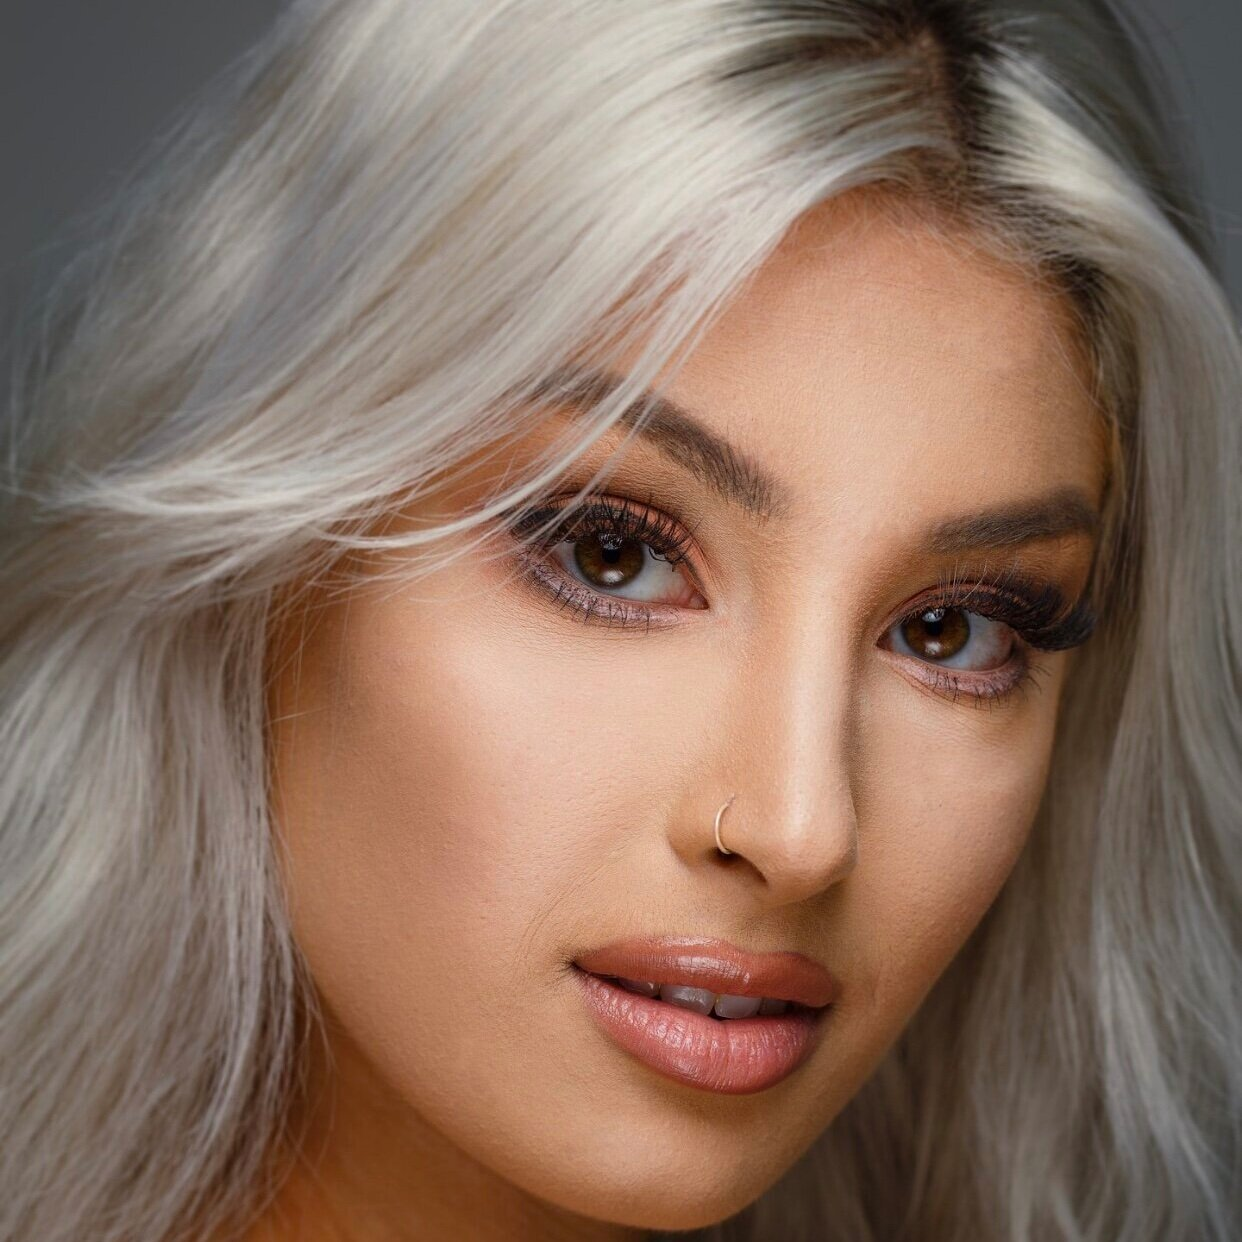 - Click To VIEW INSTAGRAMHOMETOWN: San Diego, CAEDUCATION / EXPERIENCE:SPECIALIZES IN:FAVORITE BEAUTY TIP:AVAILABILITY: 7 Days a Week | 8:00 am - 8:00 pmTO SCHEDULE OR CONSULT CALL OR TEXT: (920) 256-0480